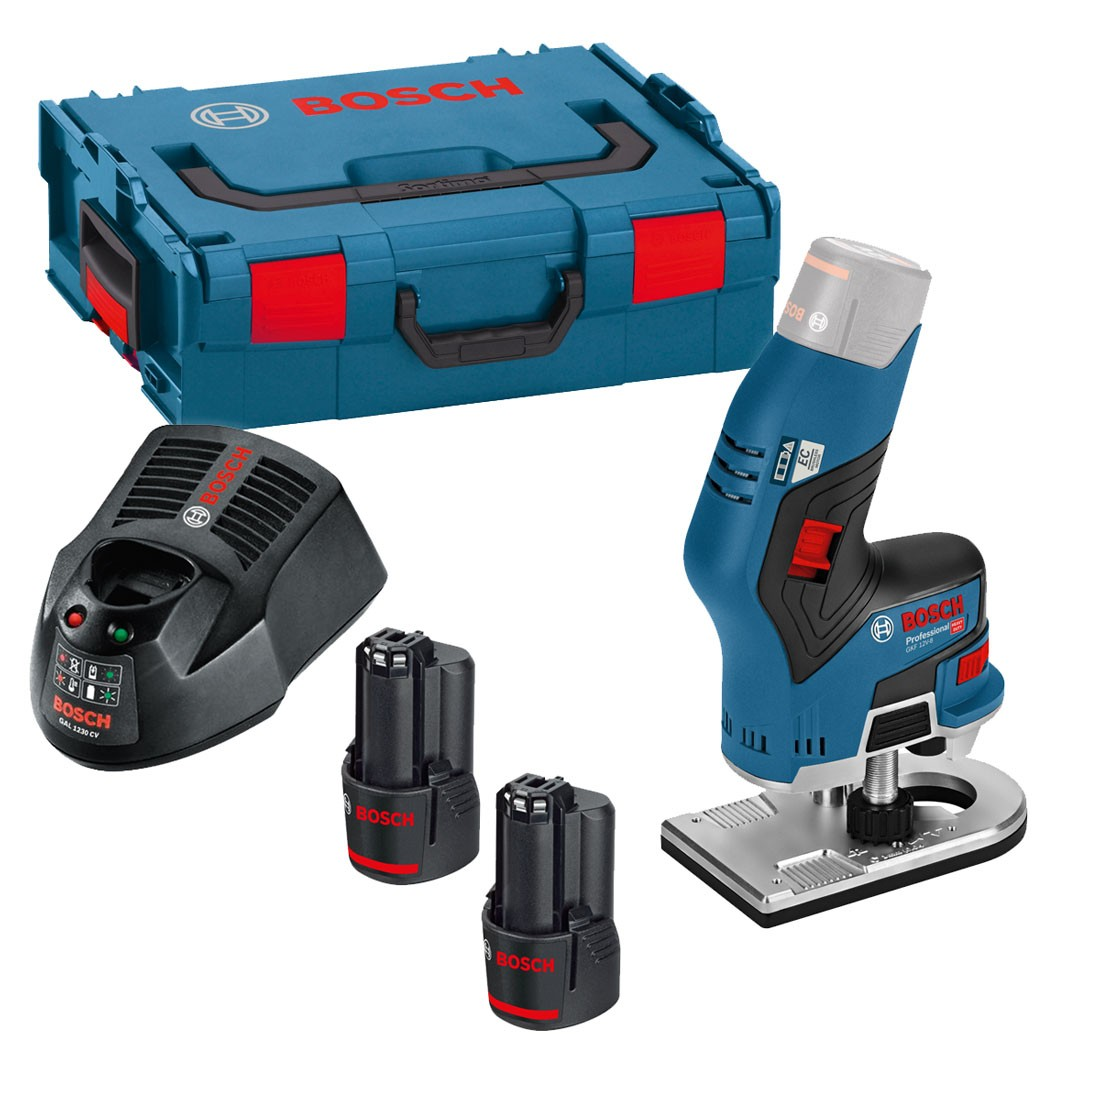 Bosch gkf 12v 8 brushless cordless compact router trimmer inc 2x bosch gkf 12v 8 brushless cordless compact router trimmer inc 2x 30ah batteries powertool world greentooth Image collections